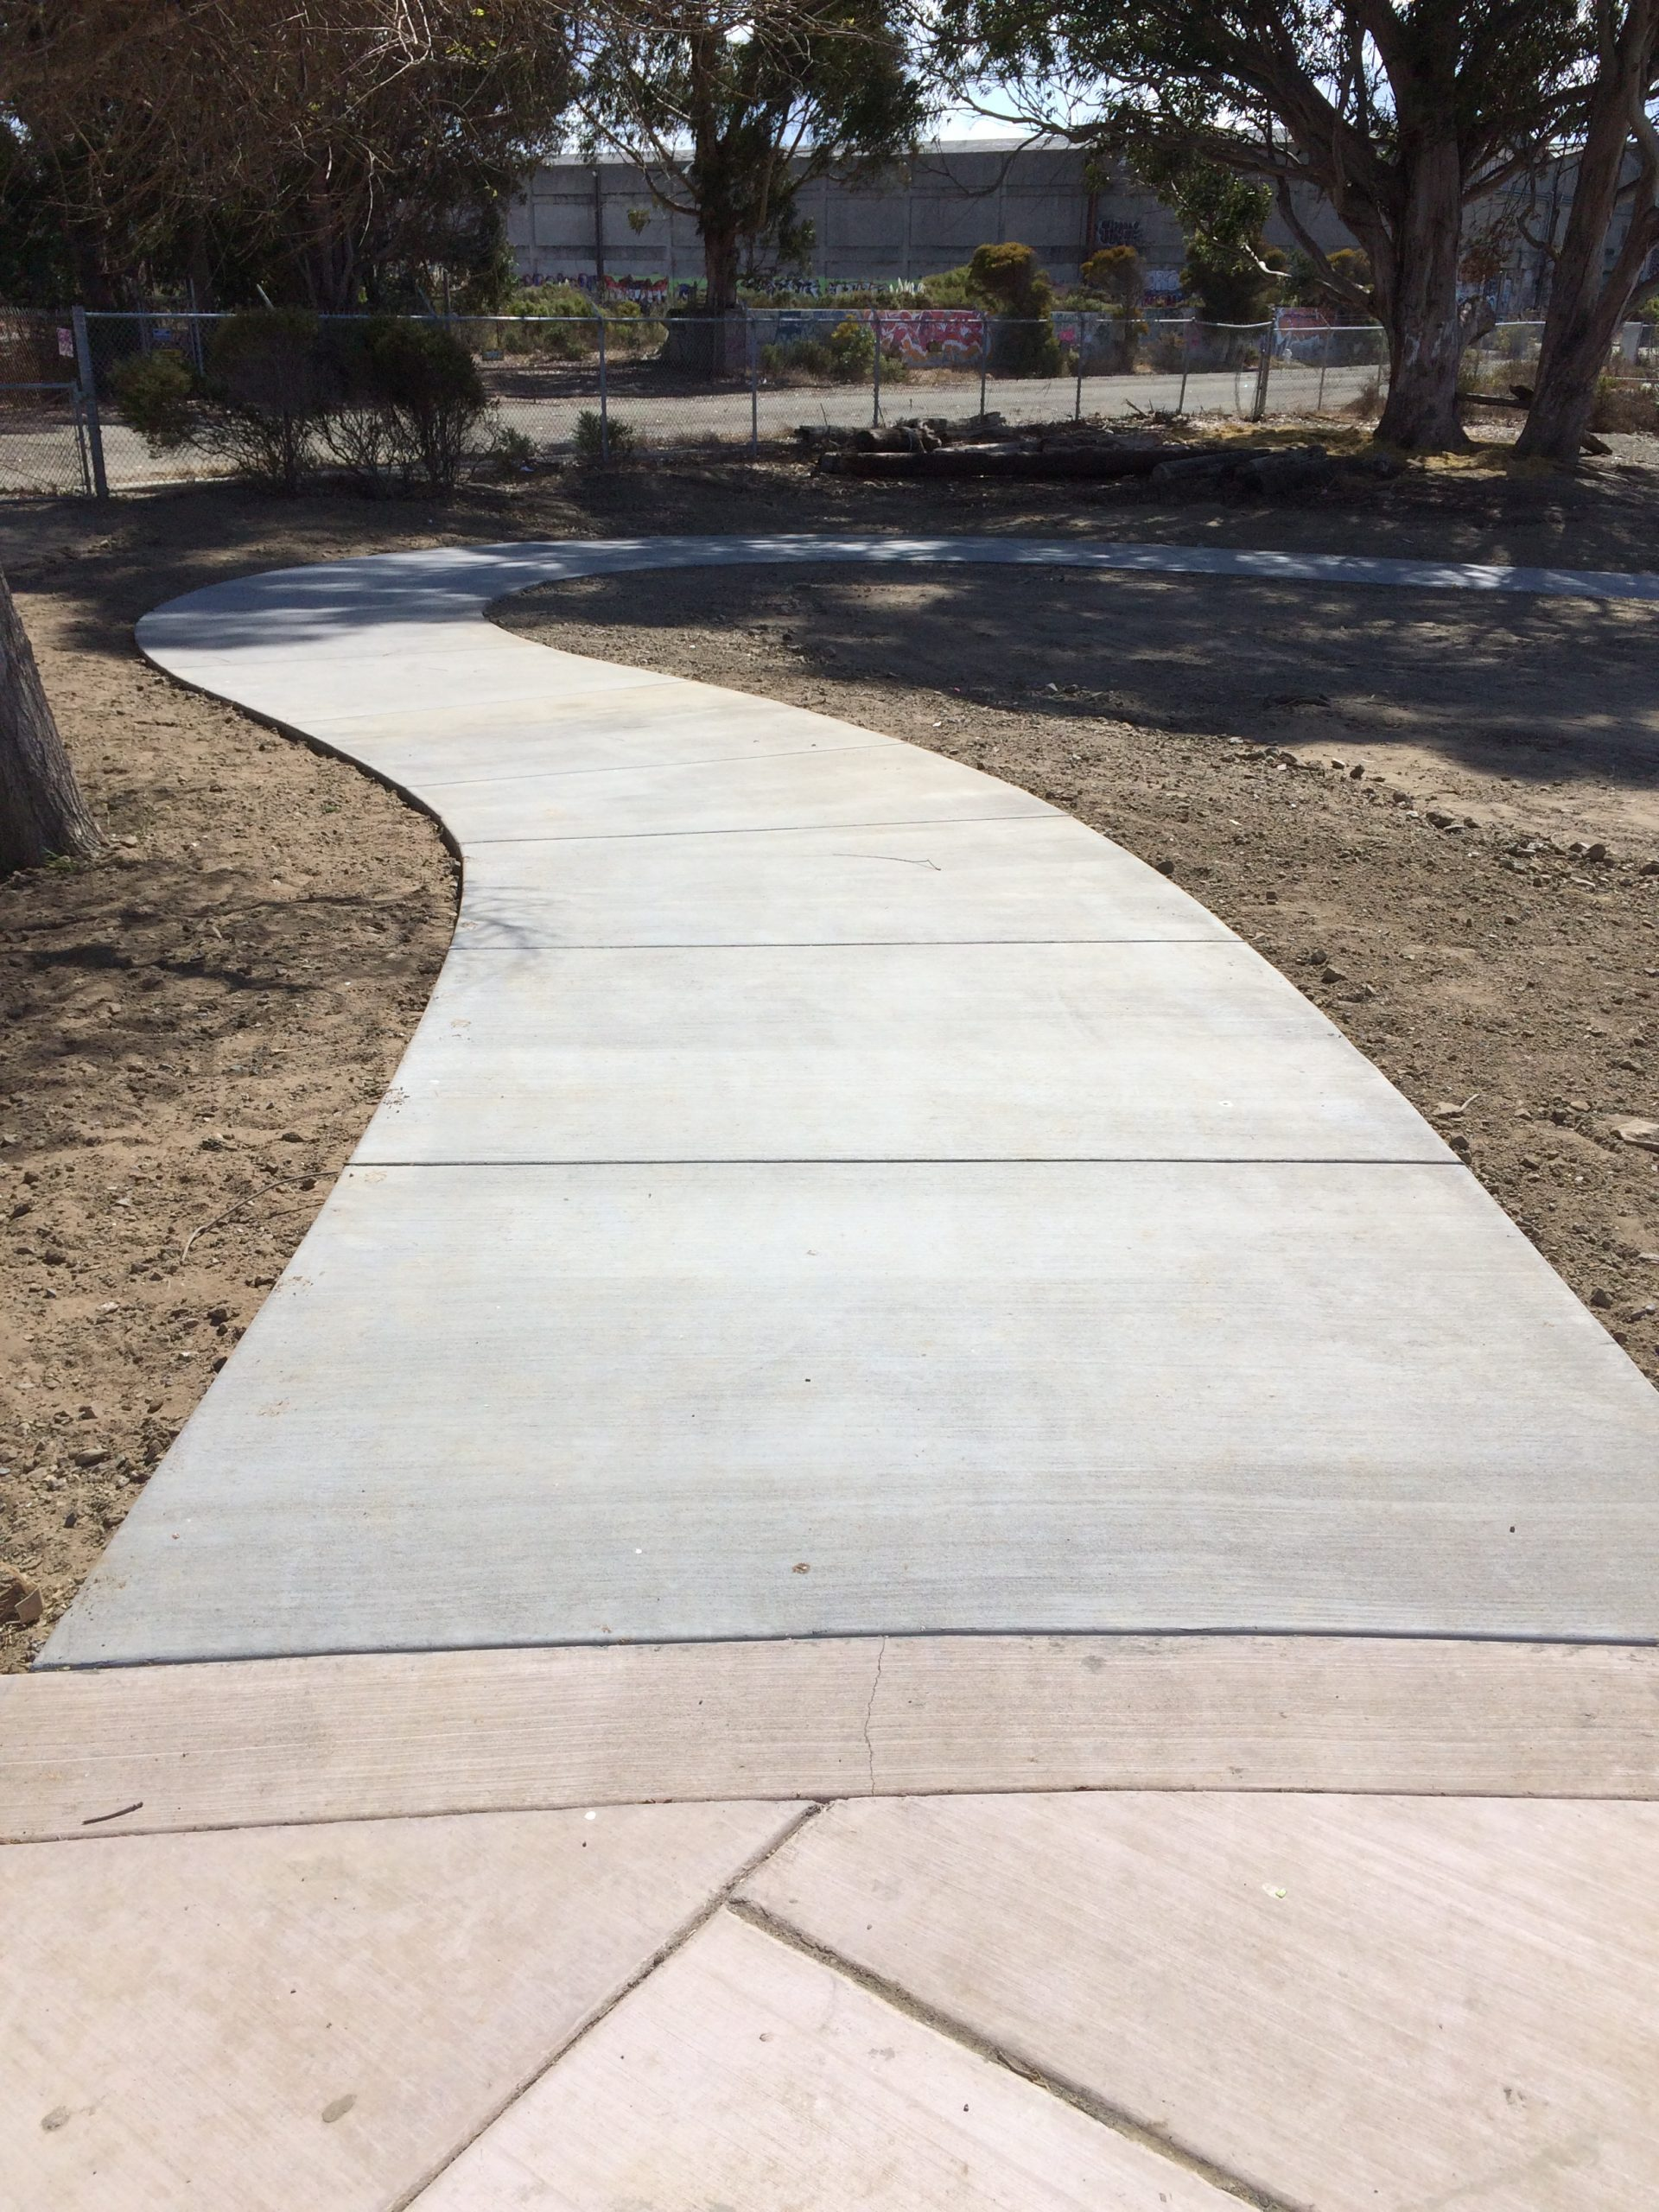 New-looking concrete path curves left and then right through bare dirt